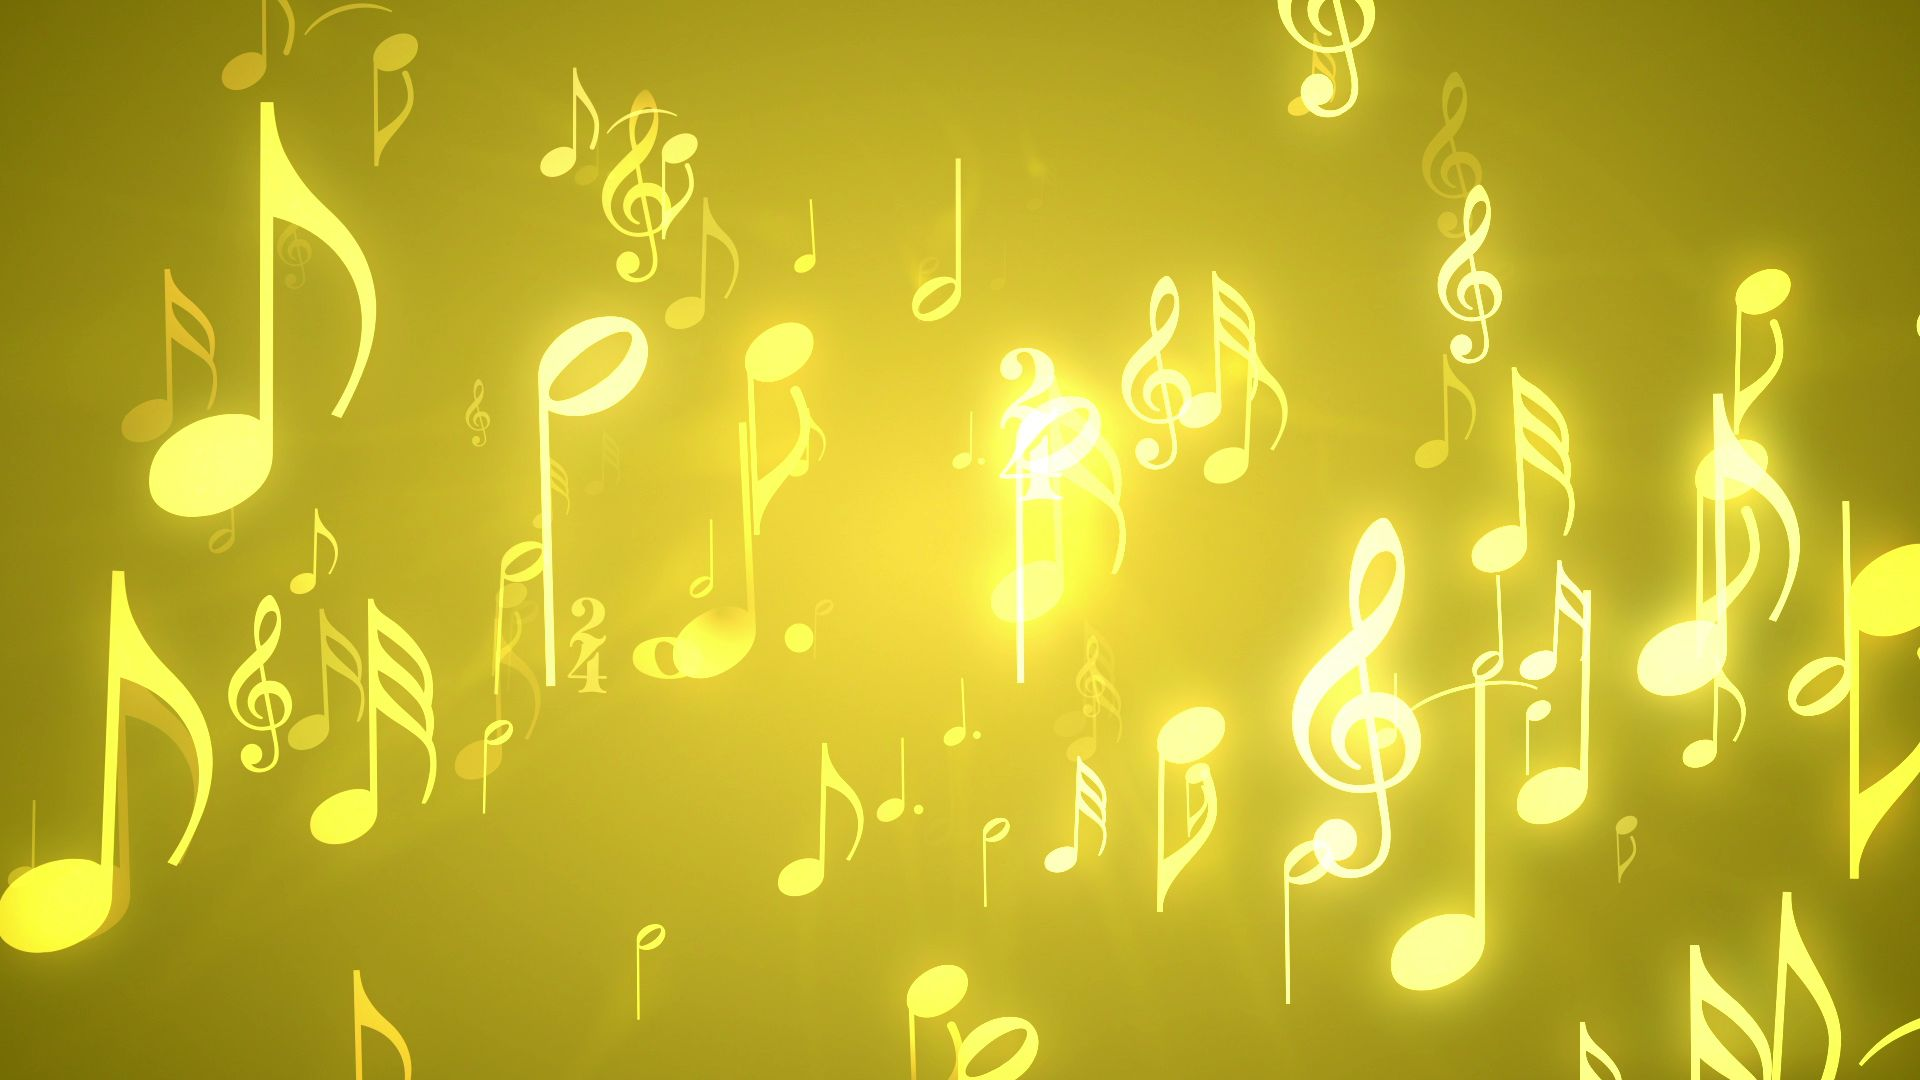 background musical music notes gold themed backgrounds motion choir downloops loop golden looping creative wallpapertag seamlessly freeze resolution frame still